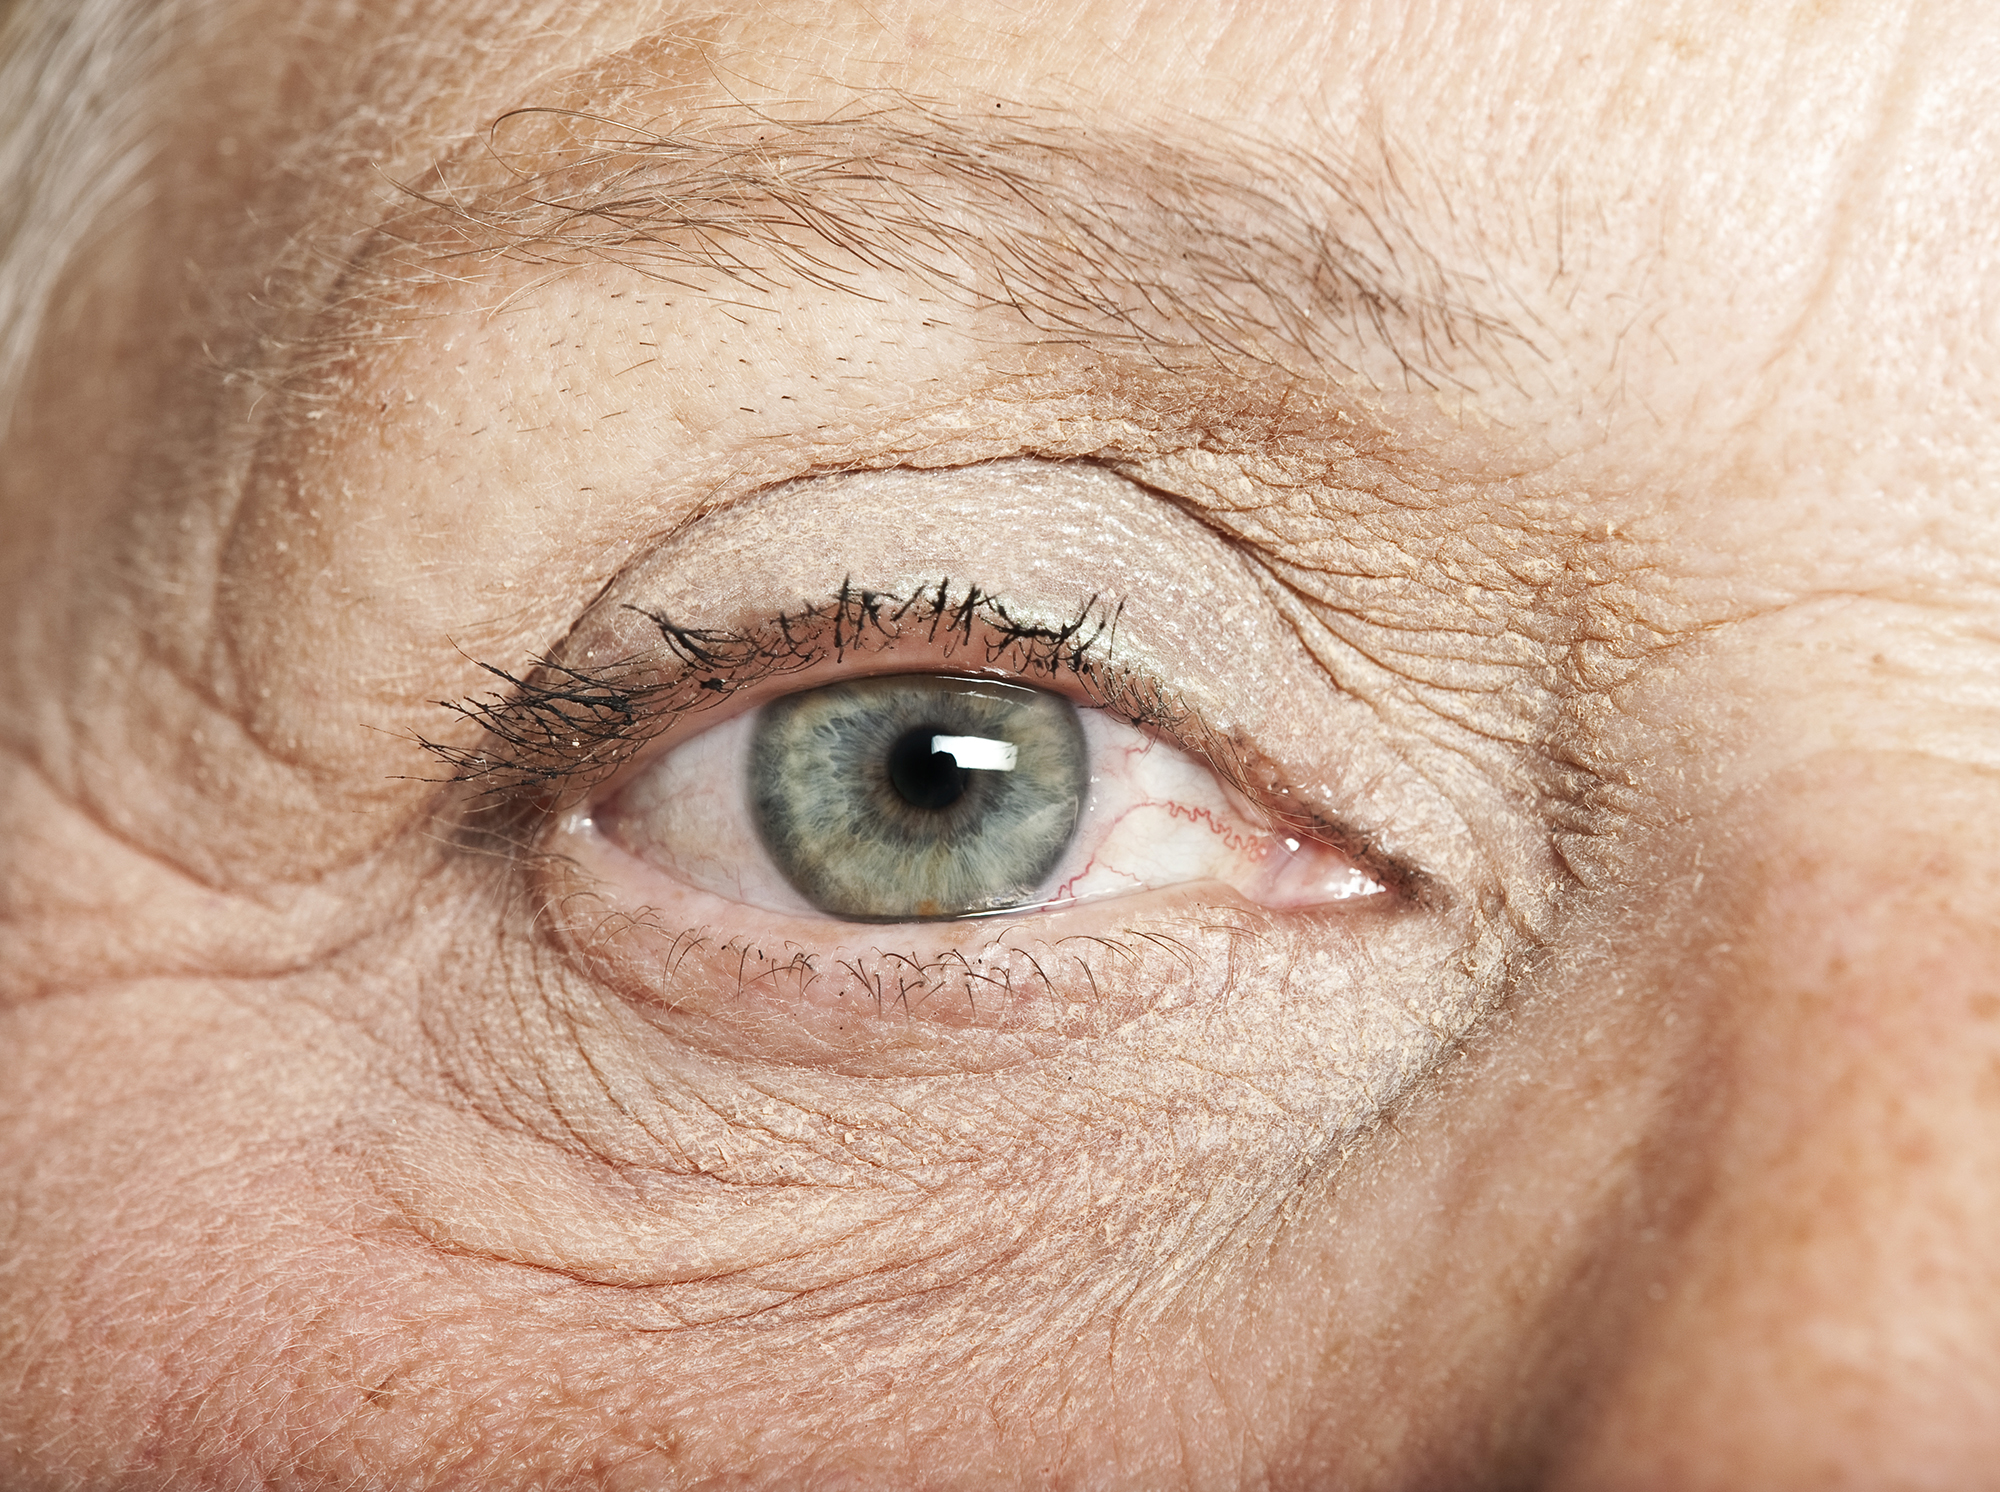 5 at-home eye exercises for better vision